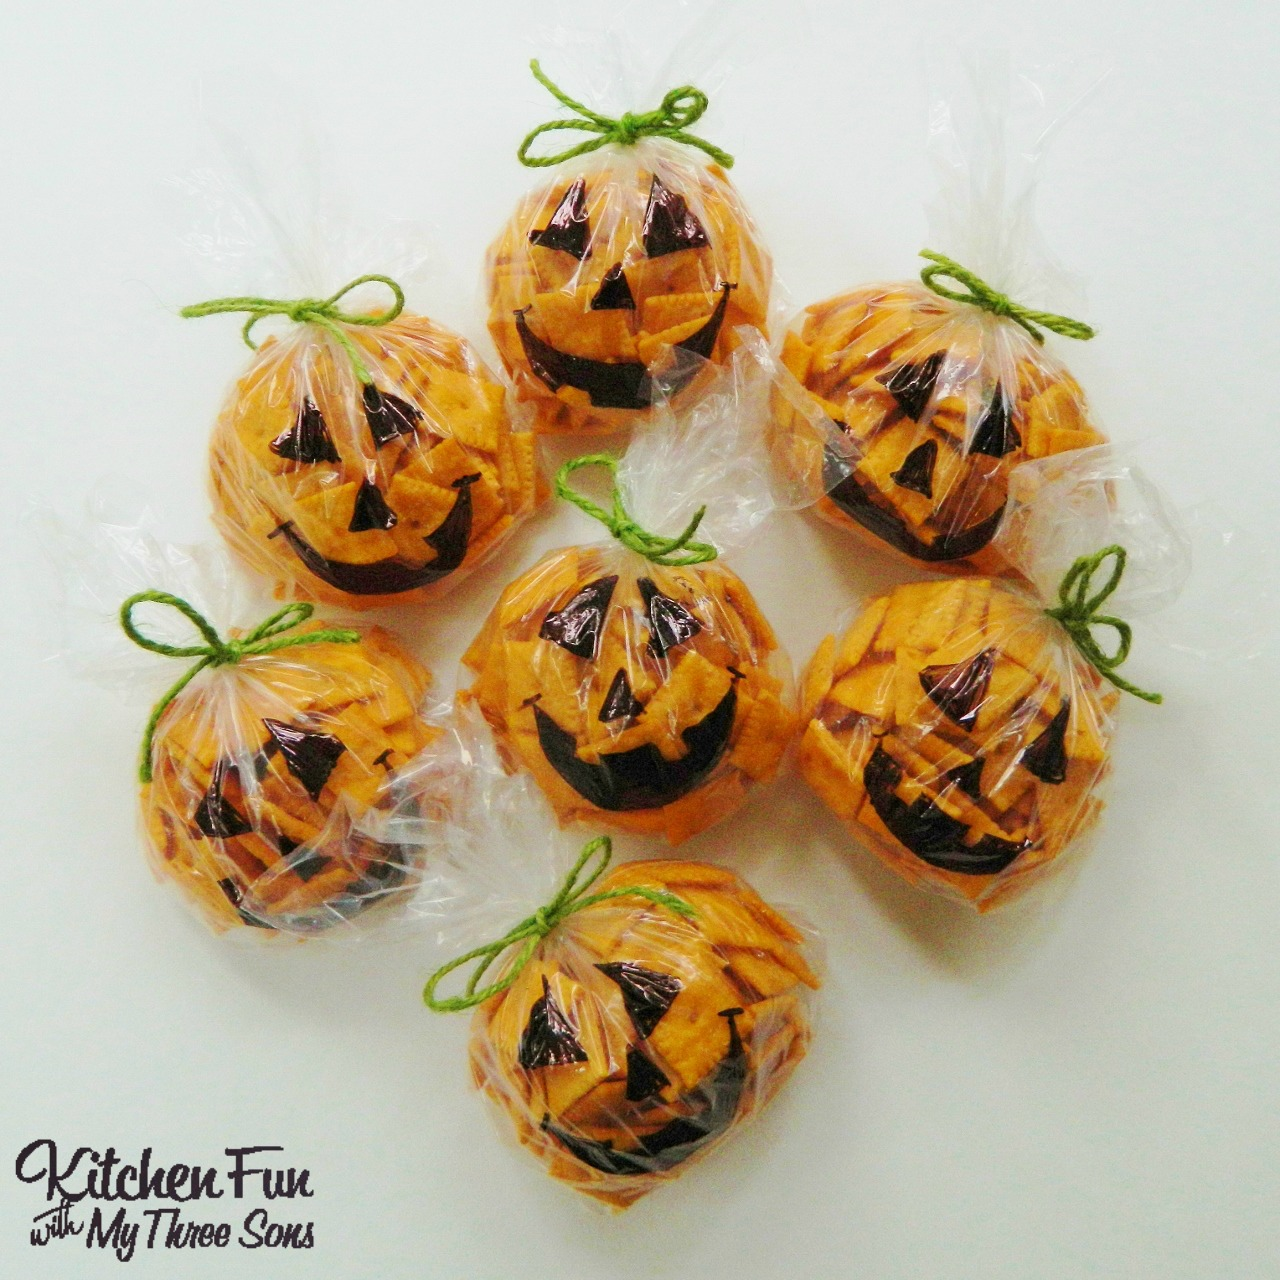 snacks archives page 4 of 15 kitchen fun with my 3 sons snacks archives page 4 of 15 kitchen fun with my 3 sons - Healthy Fun Halloween Snacks